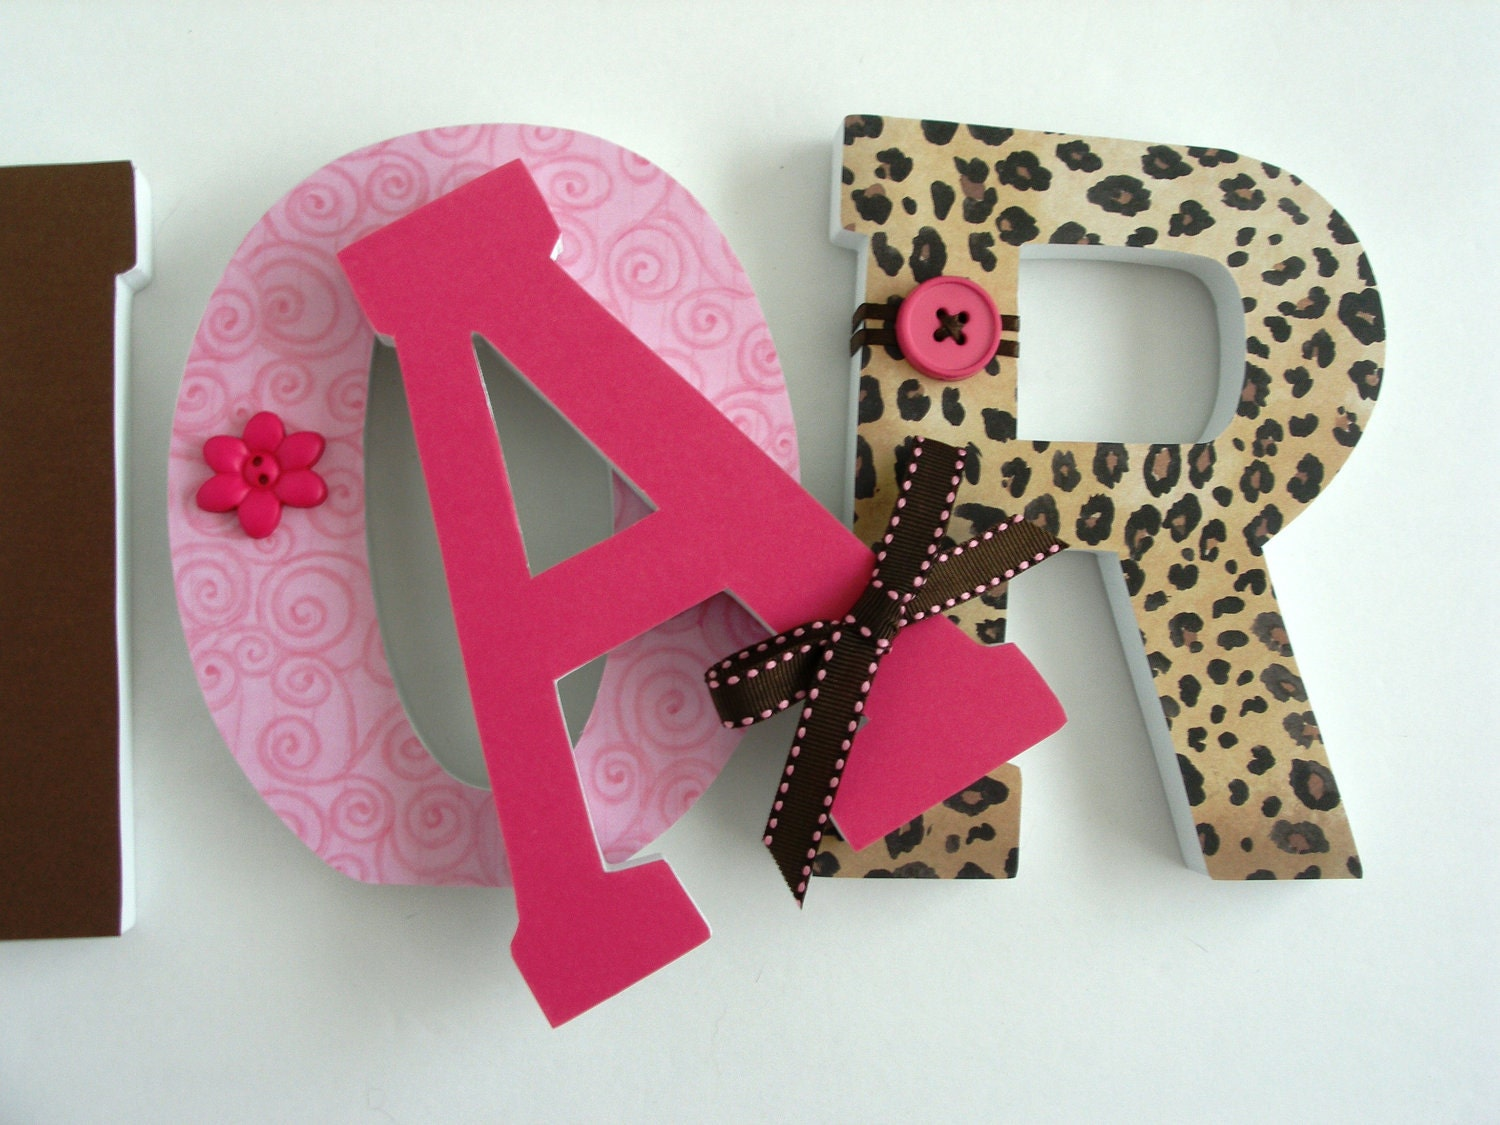 Leopard Custom Decorated Wooden Letters Personalized By